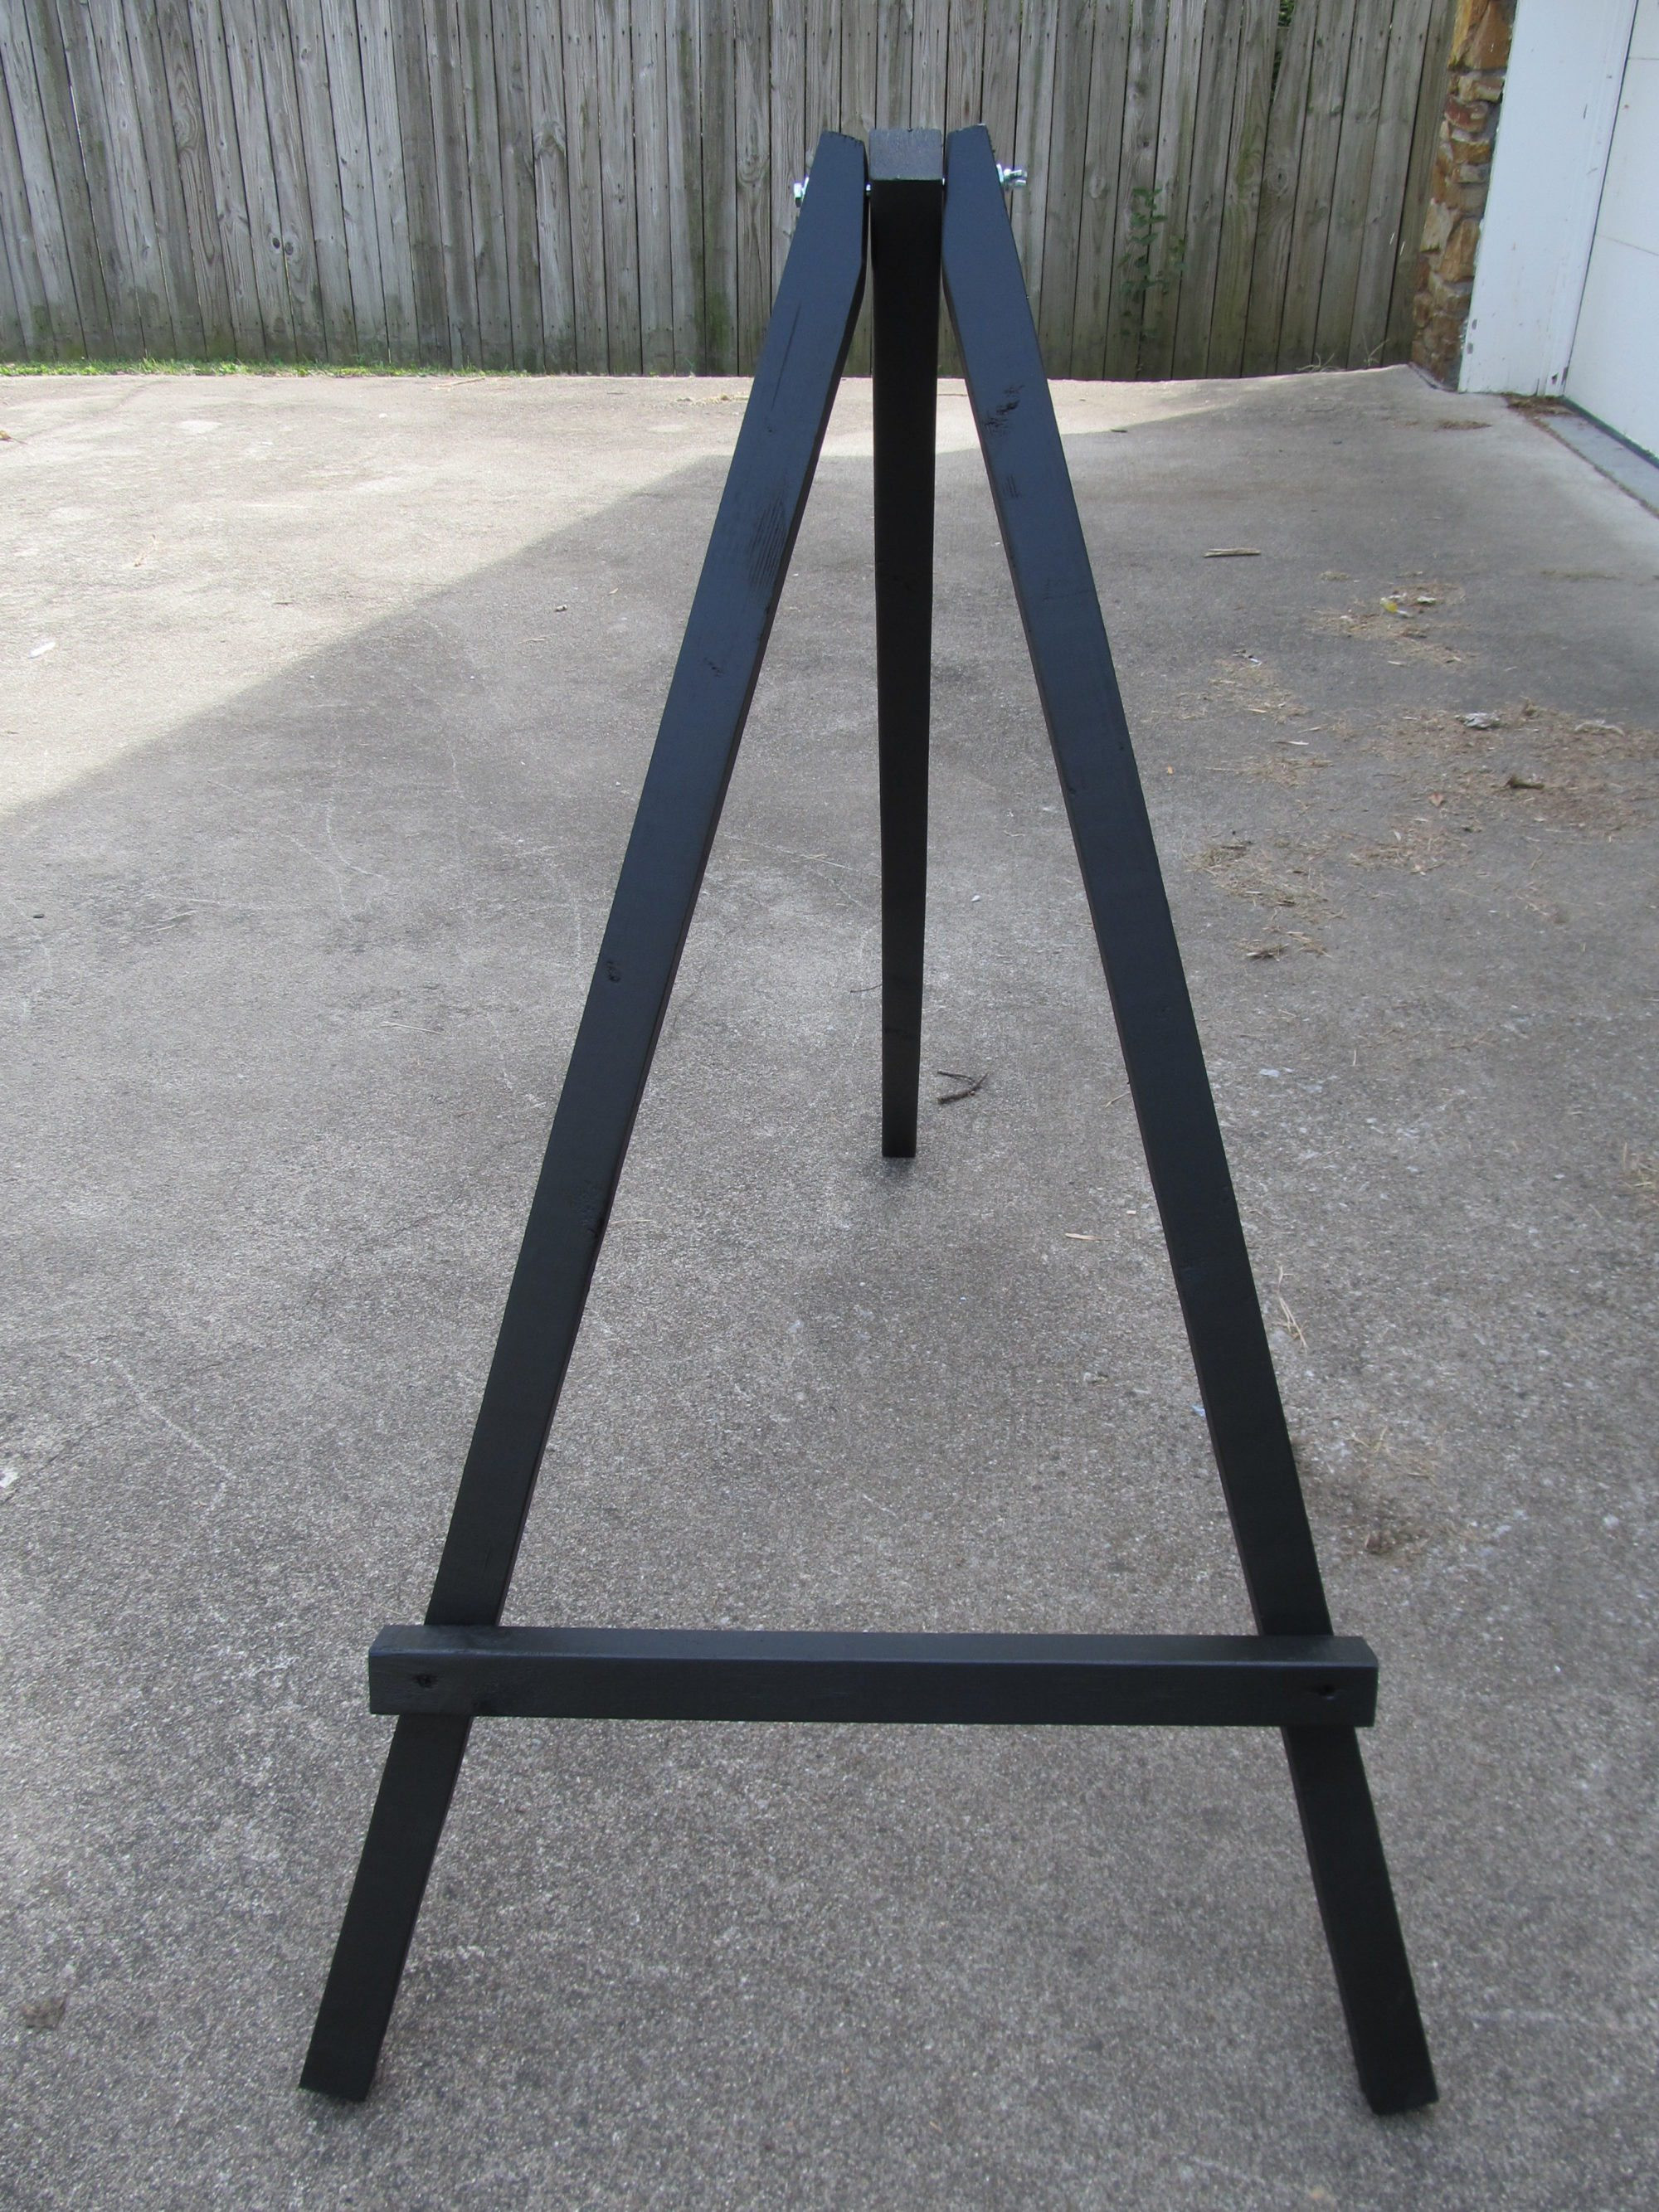 Best ideas about DIY Easel Stand . Save or Pin How To Make a Display Easel My Repurposed Life™ Now.